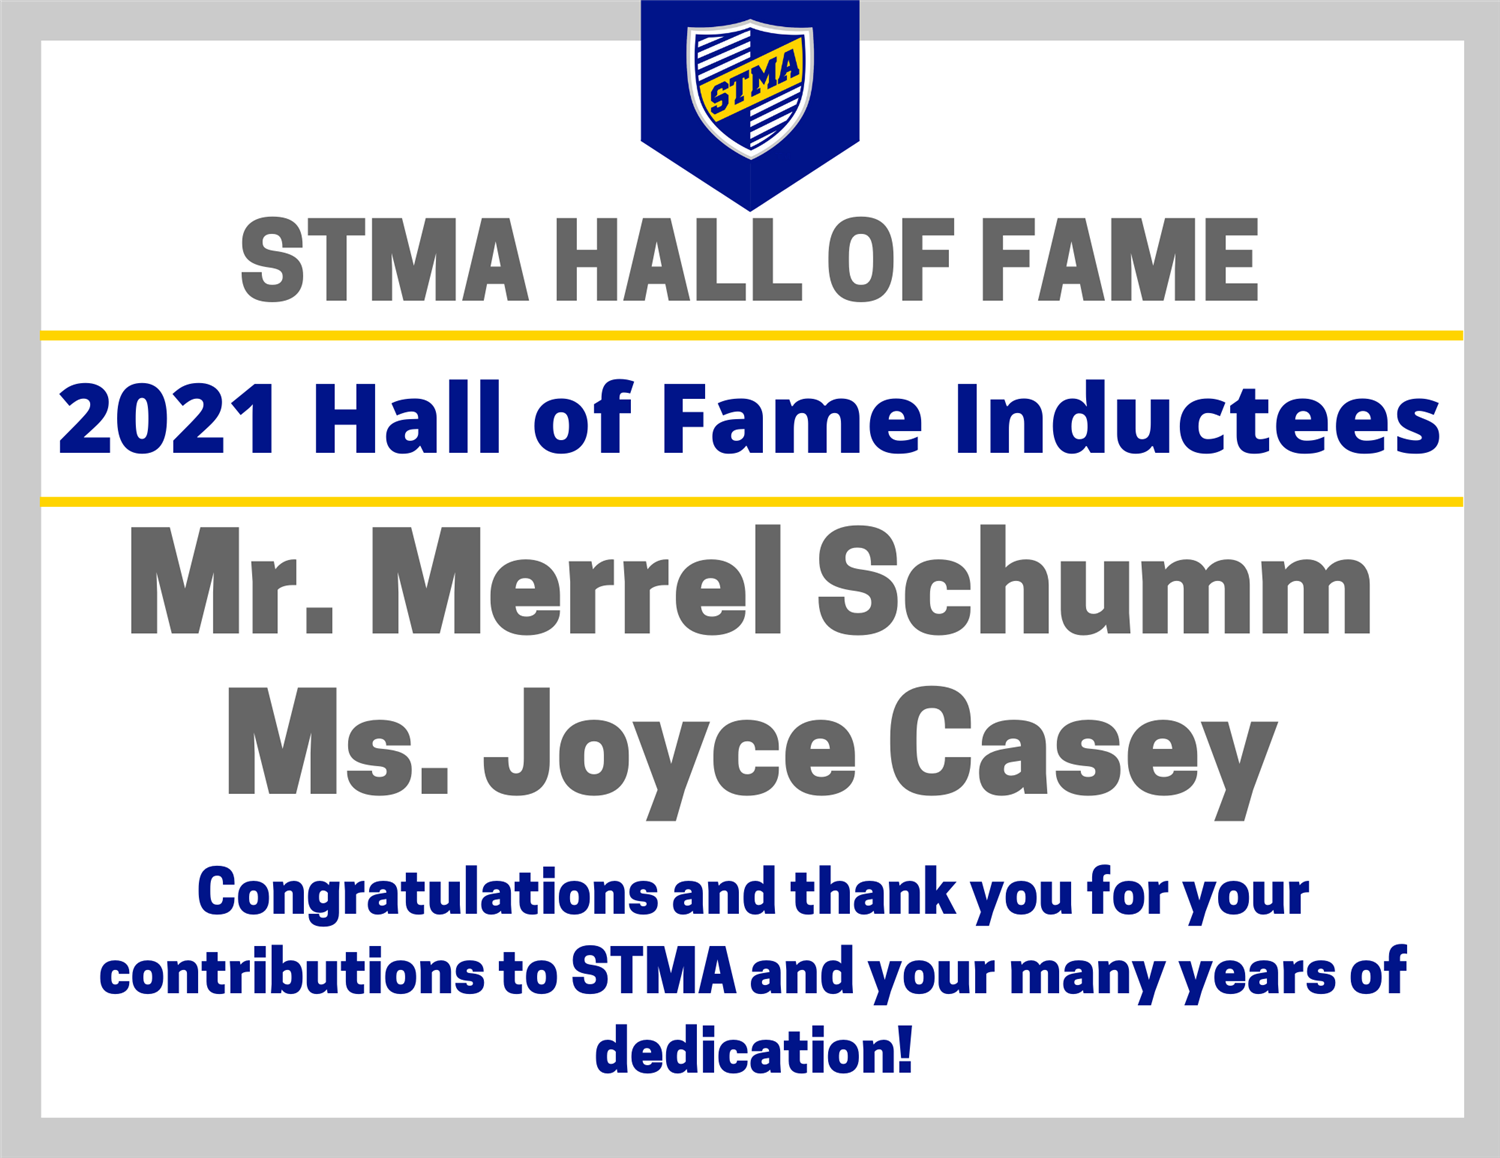 2020 STMA Hall of Fame Inductees Announced